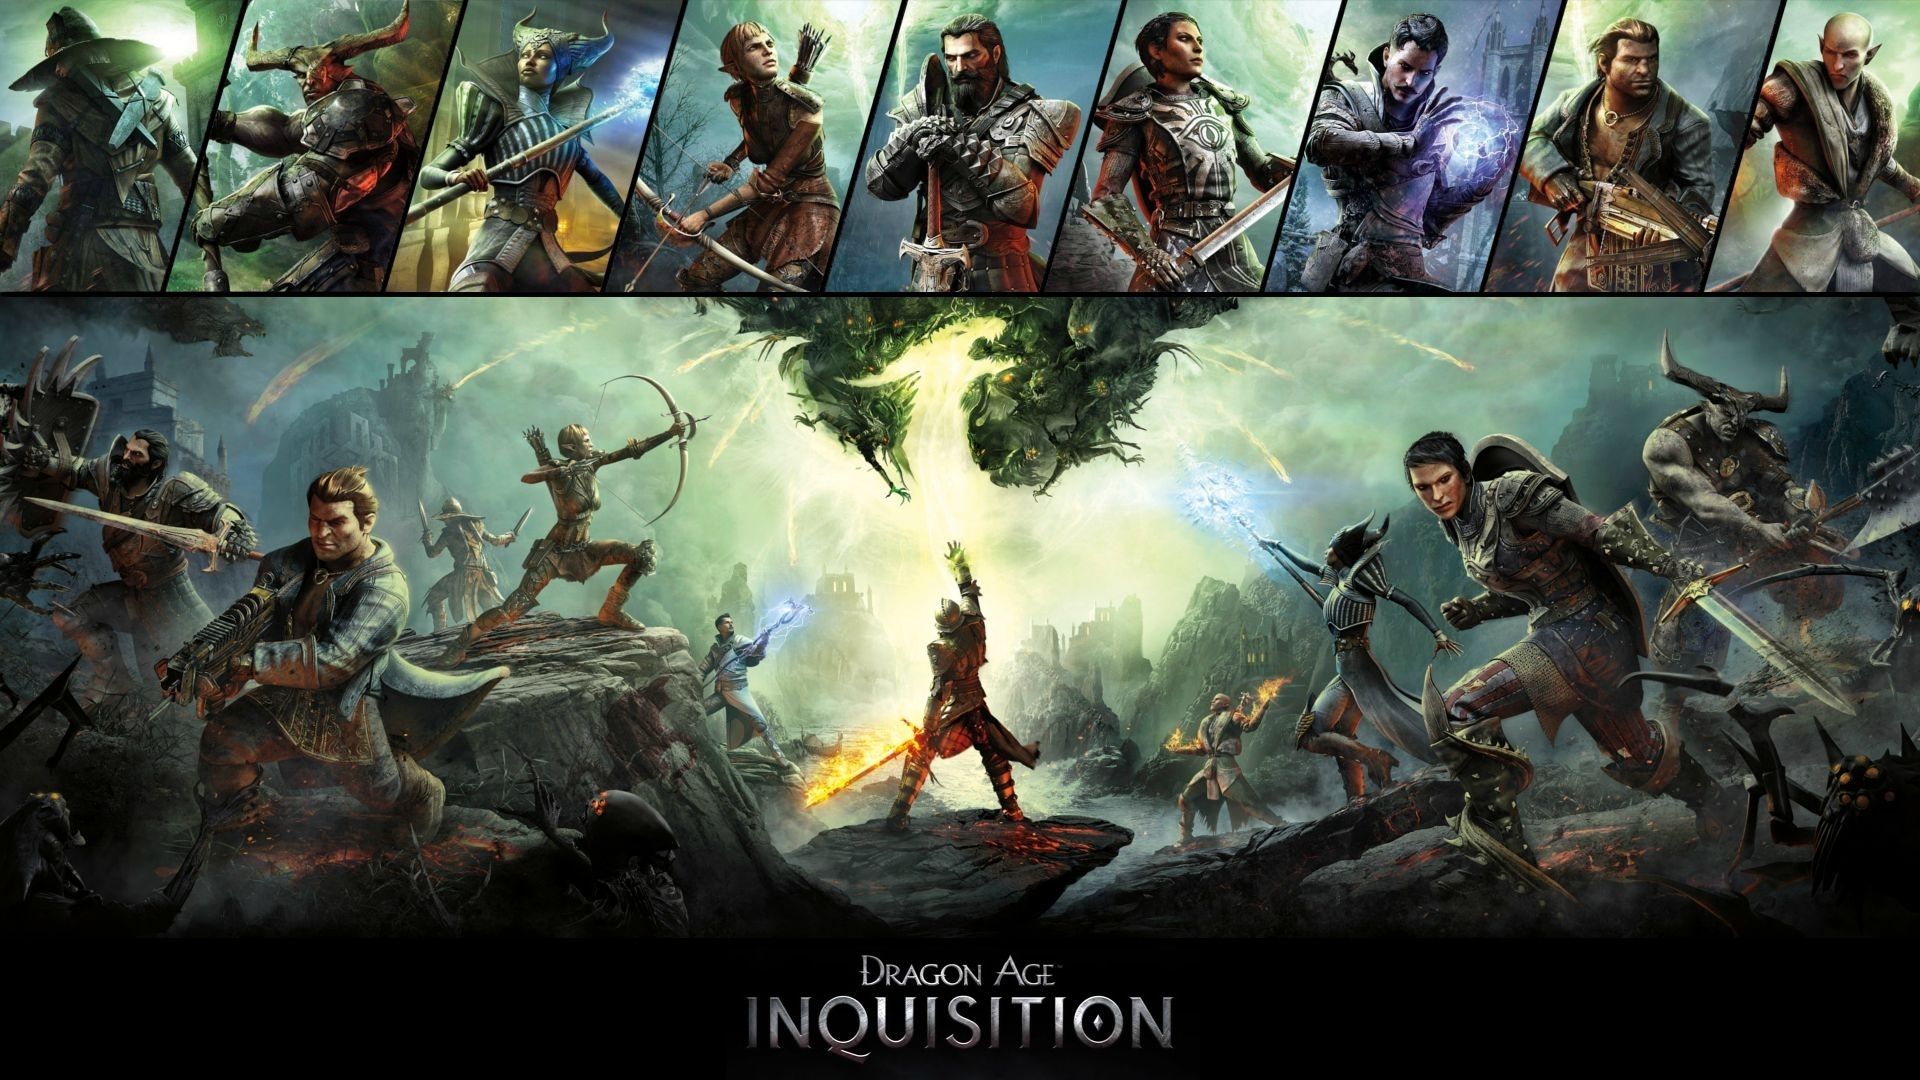 dragon age inquisition wallpaper [d/l in comments] : xboxthemes